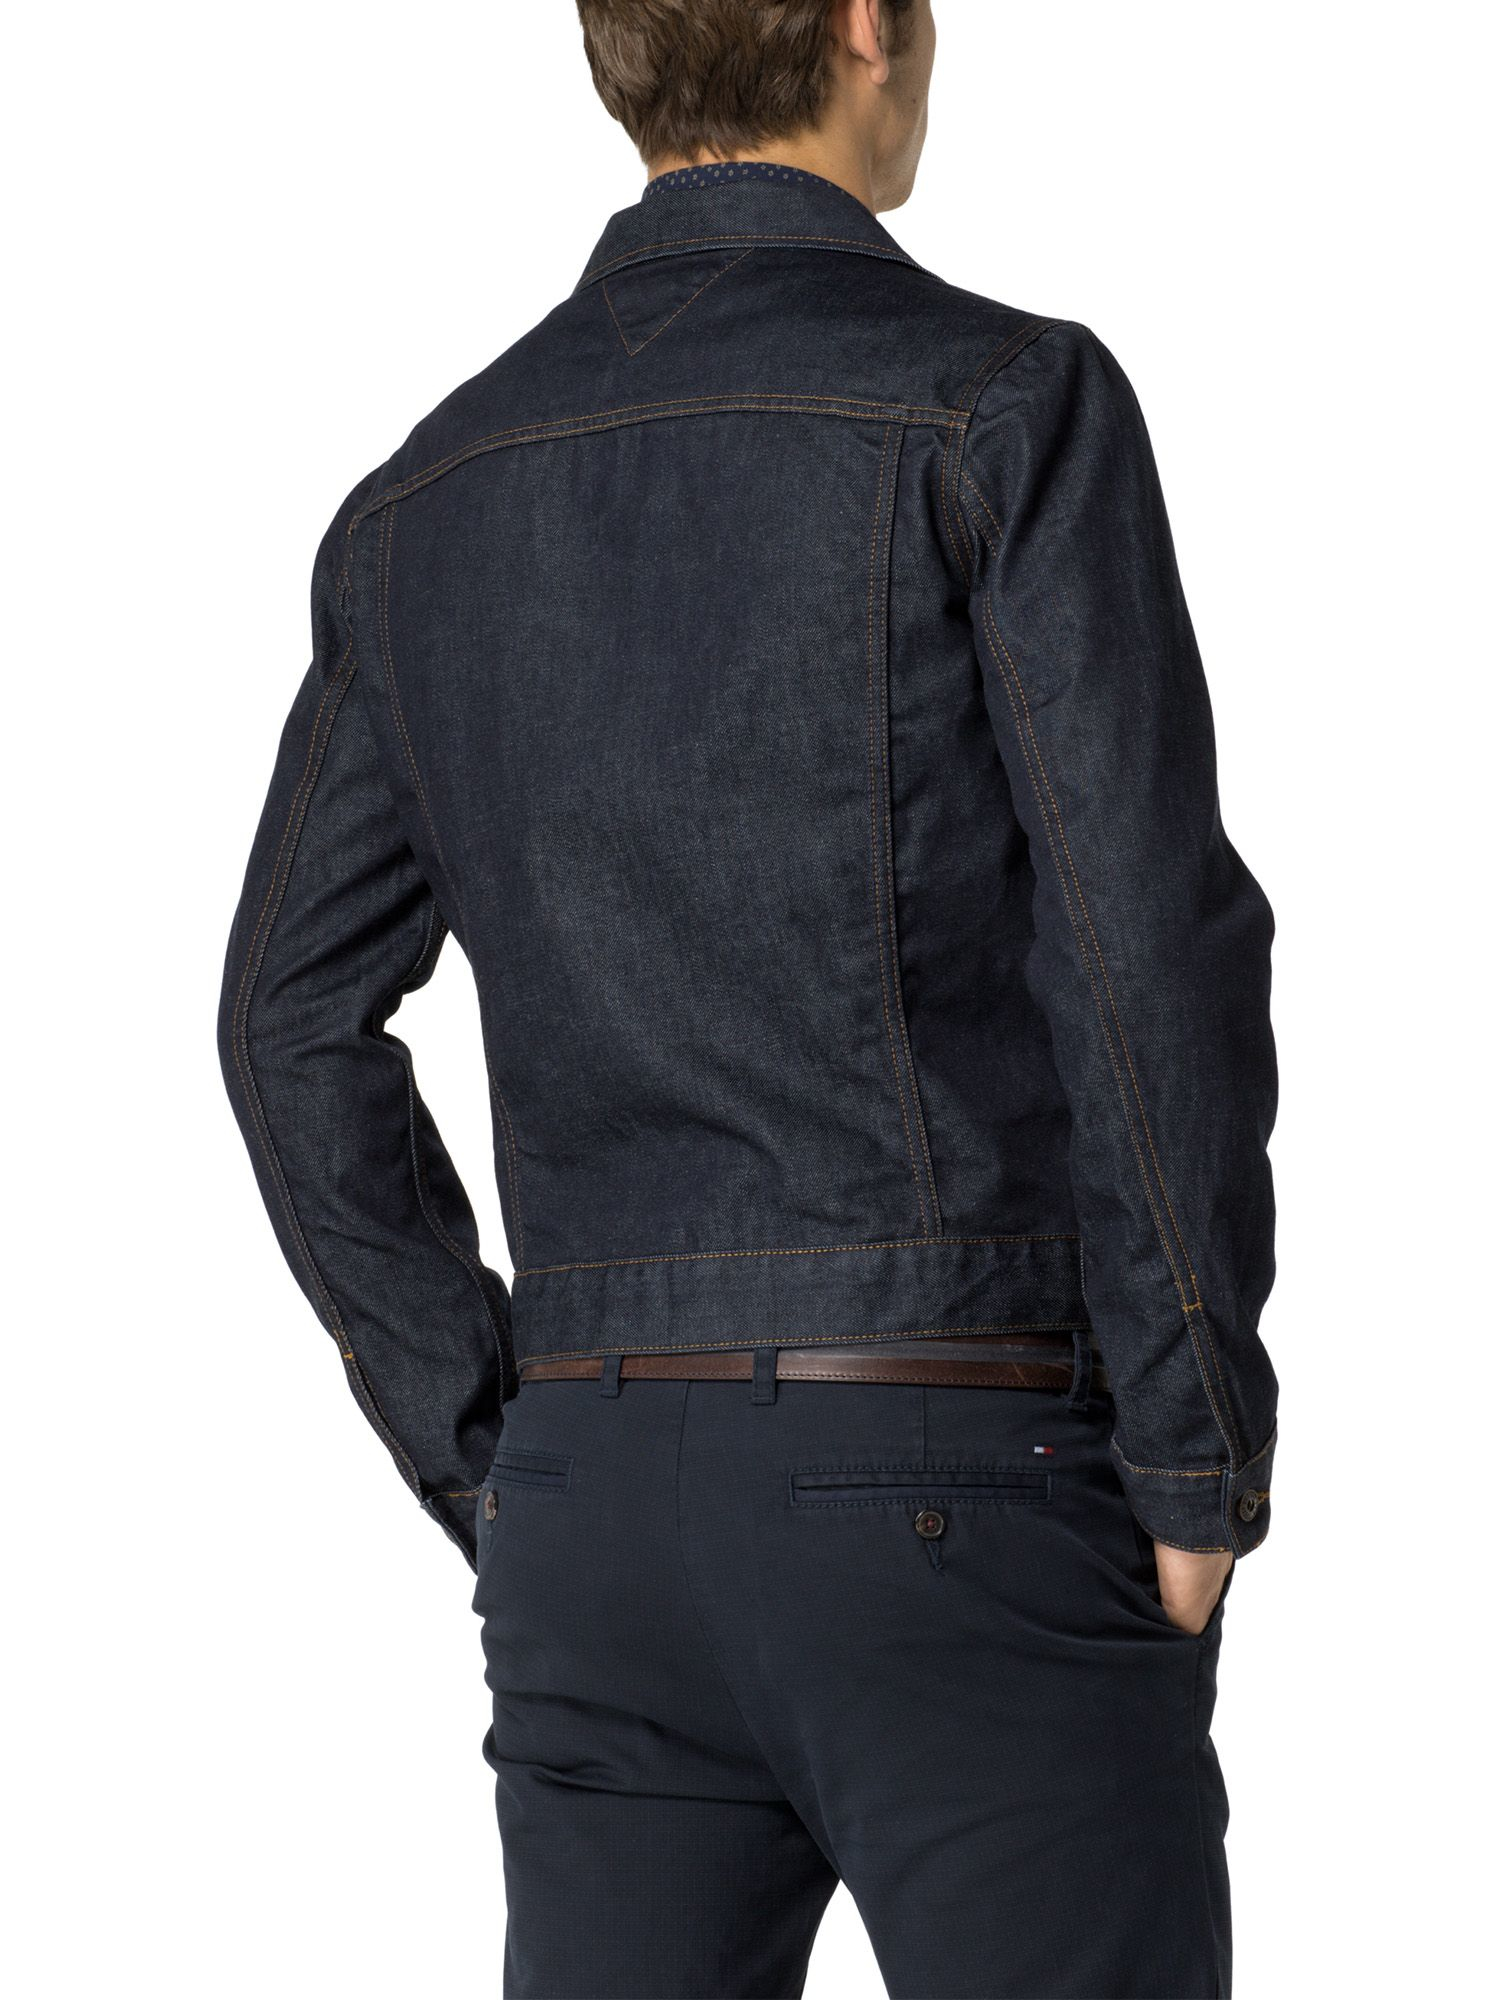 Tommy hilfiger Denim Jacket in Blue for Men | Lyst